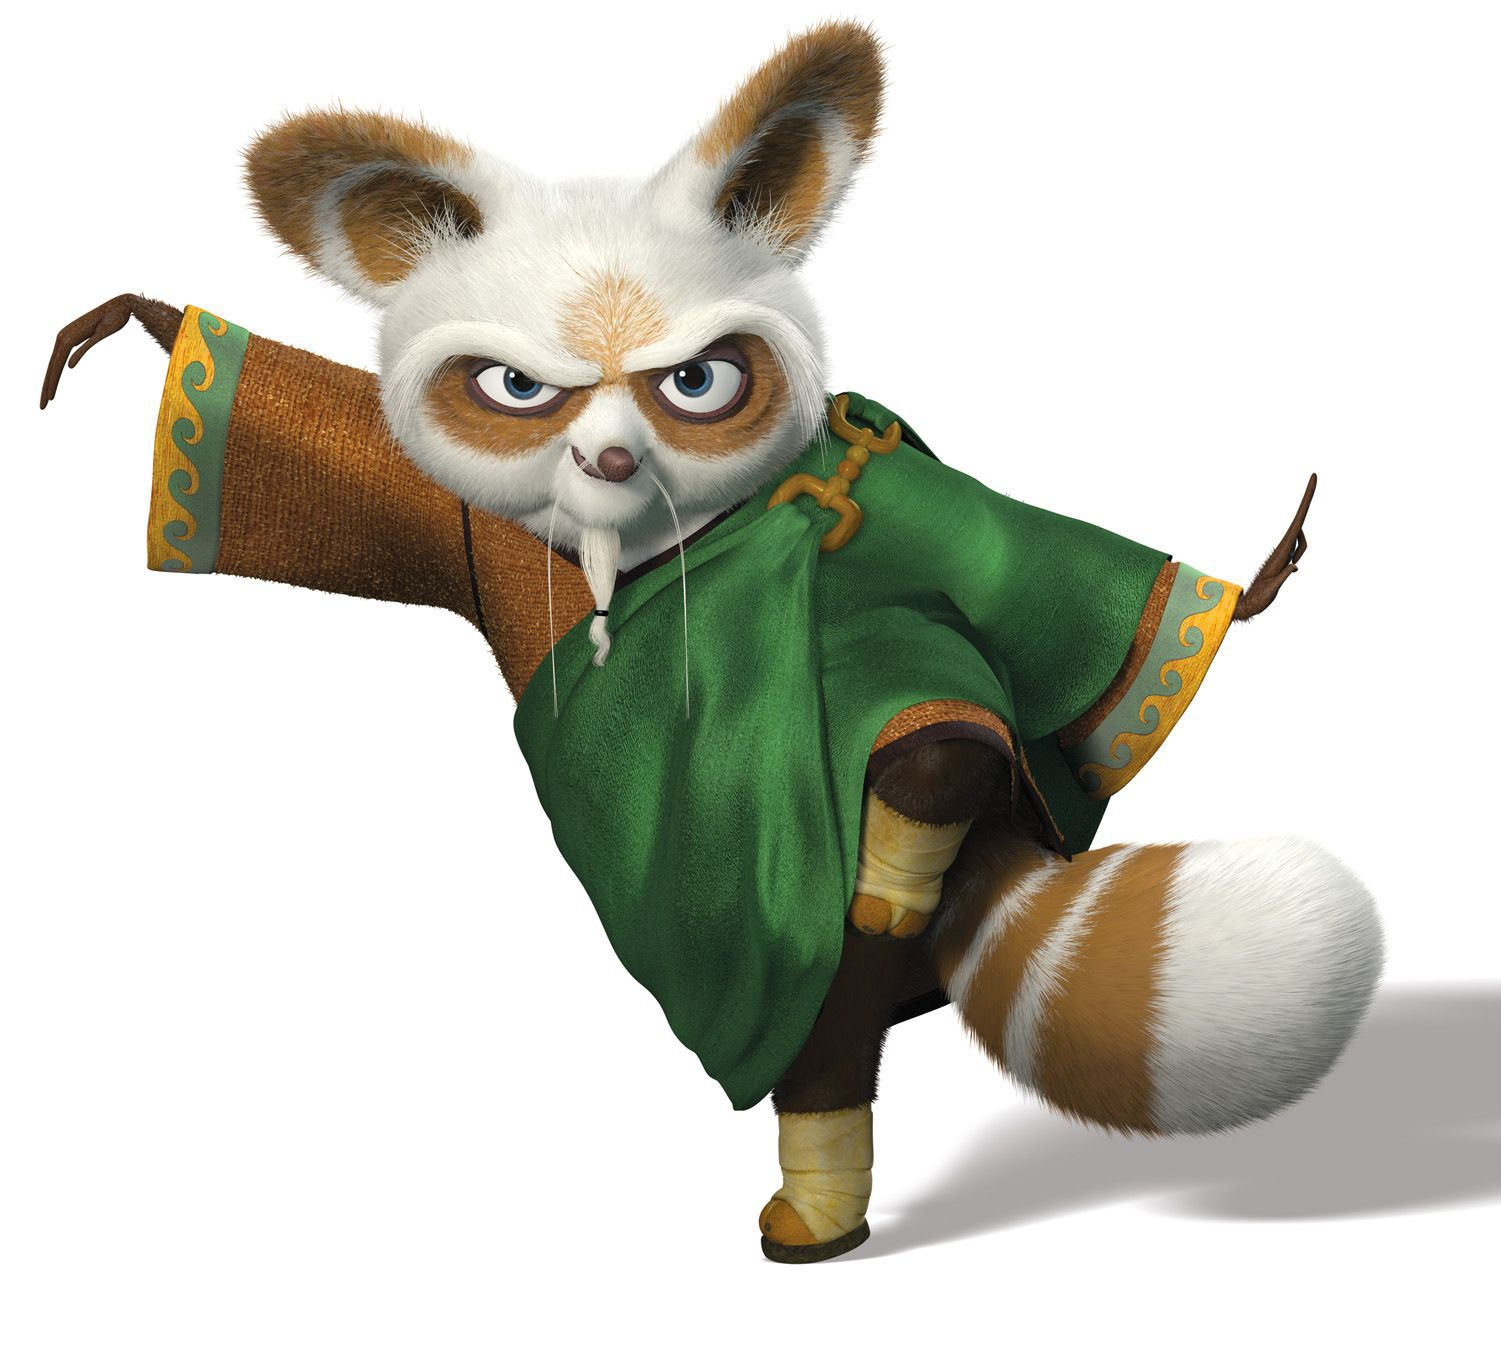 Shifu kung fu panda wiki the online encyclopedia to the - Kung fu panda shifu ...